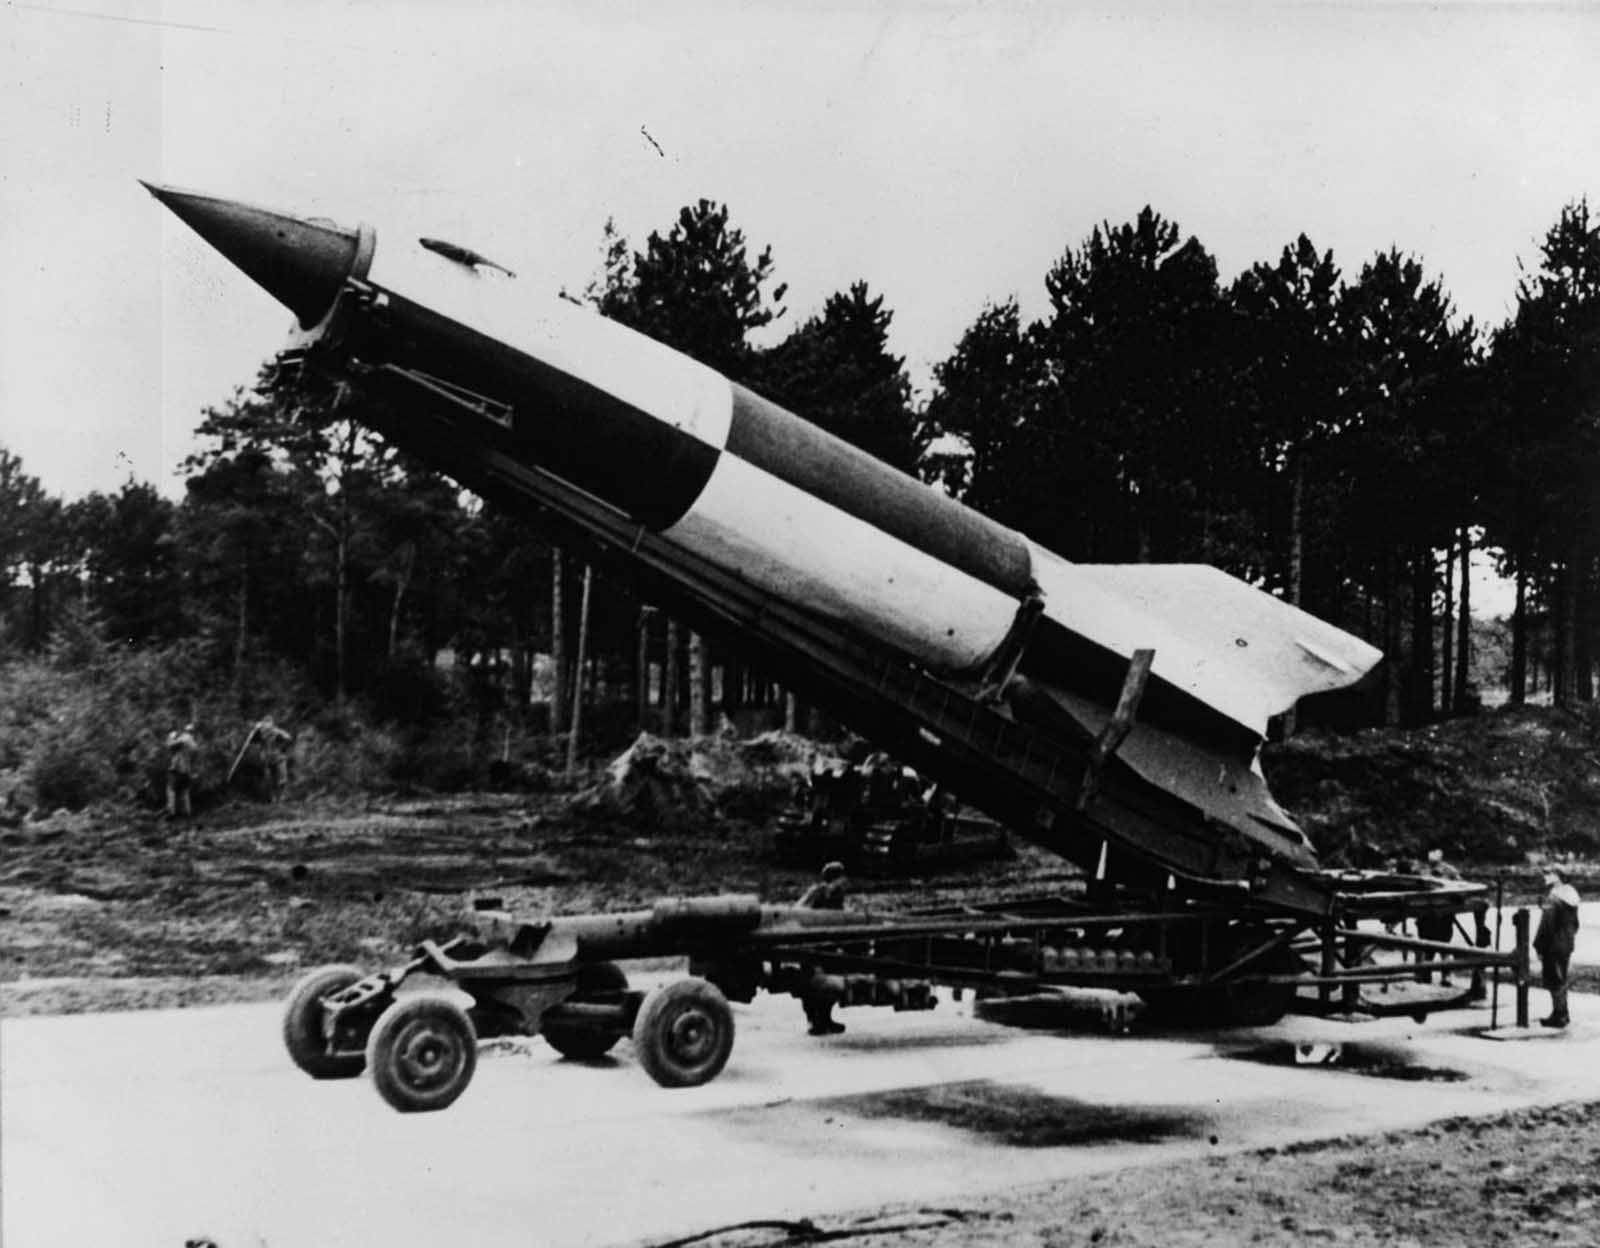 A V-2 rocket ready for launching at Cuxhaven in Lower Saxony. 1945.